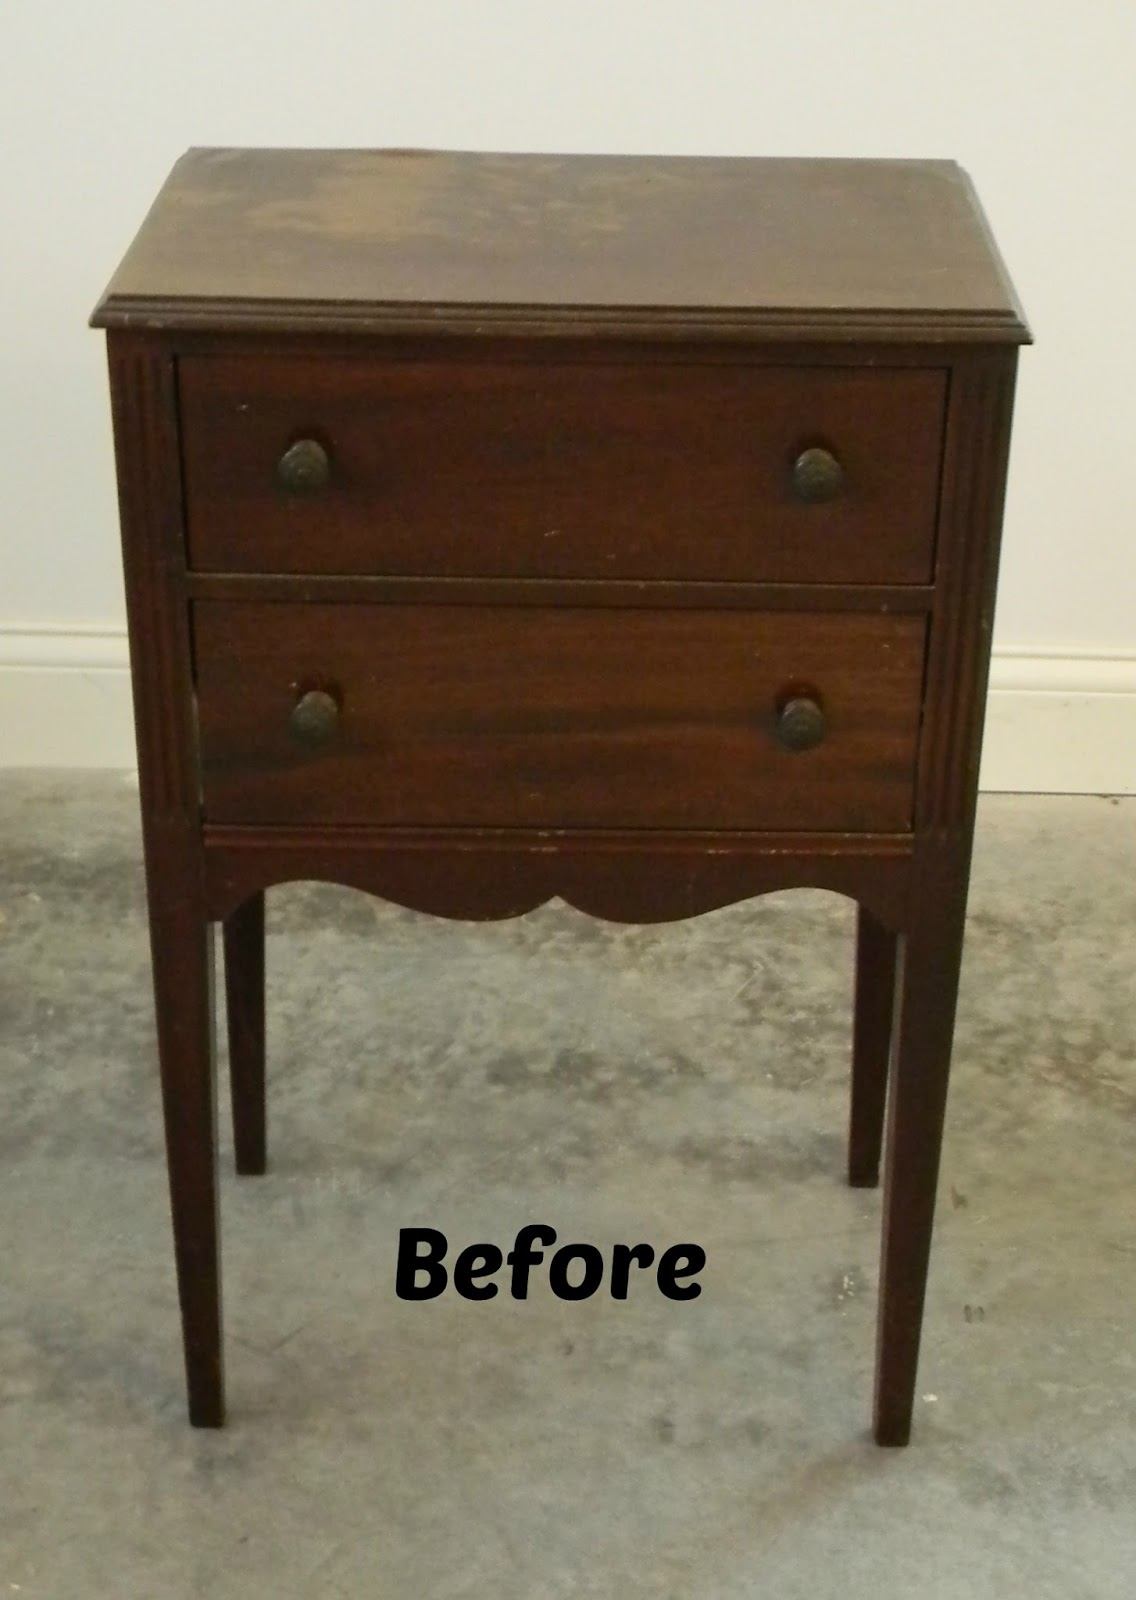 Vintage Sewing Cabinet - Forever Decorating!: Vintage Sewing Cabinet